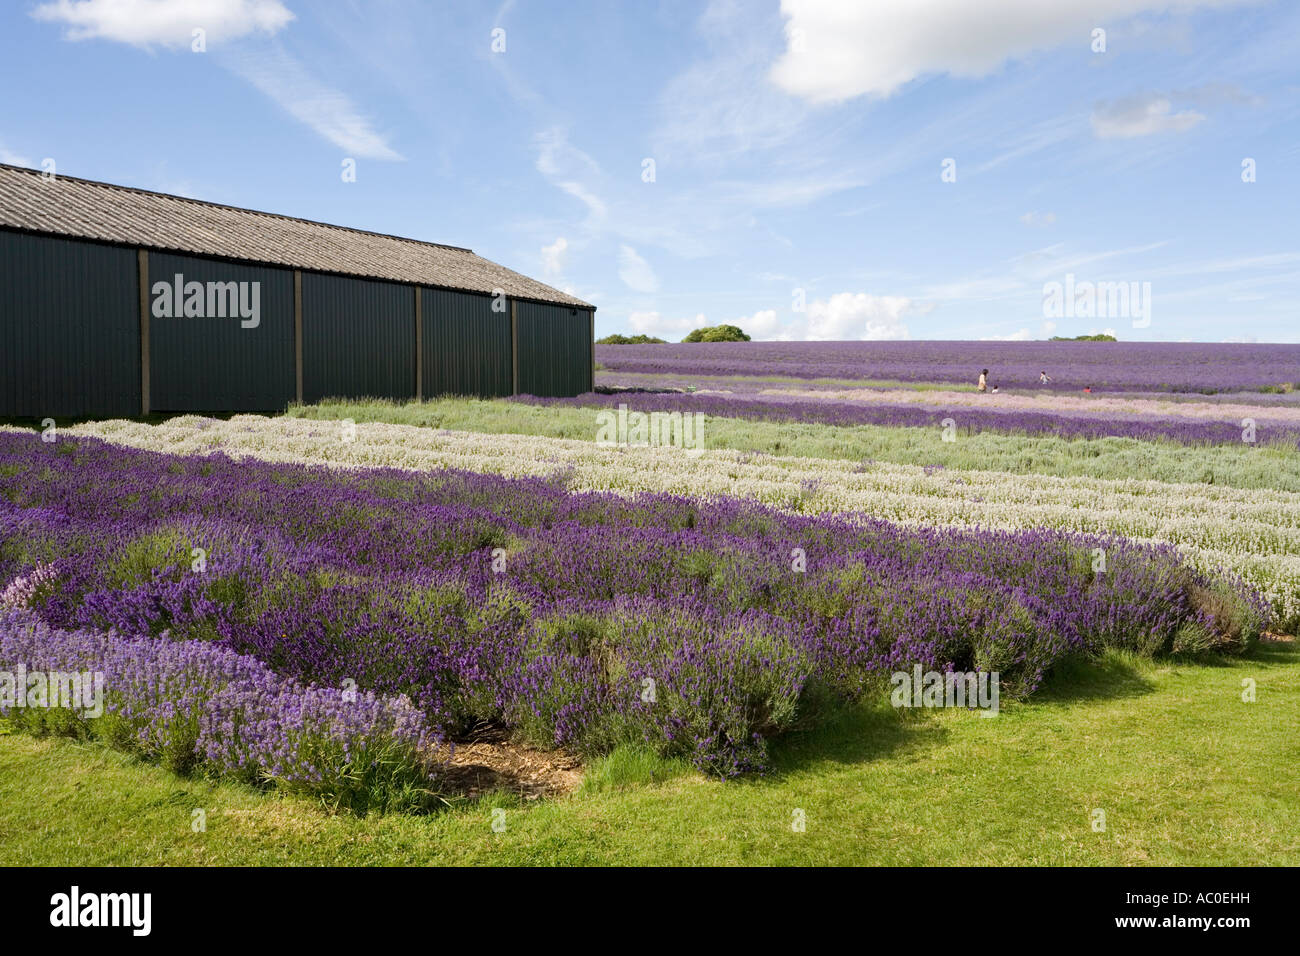 Snowshill Lavender Farm near the Cotswold village of Snowshill Gloucestershire - Stock Image